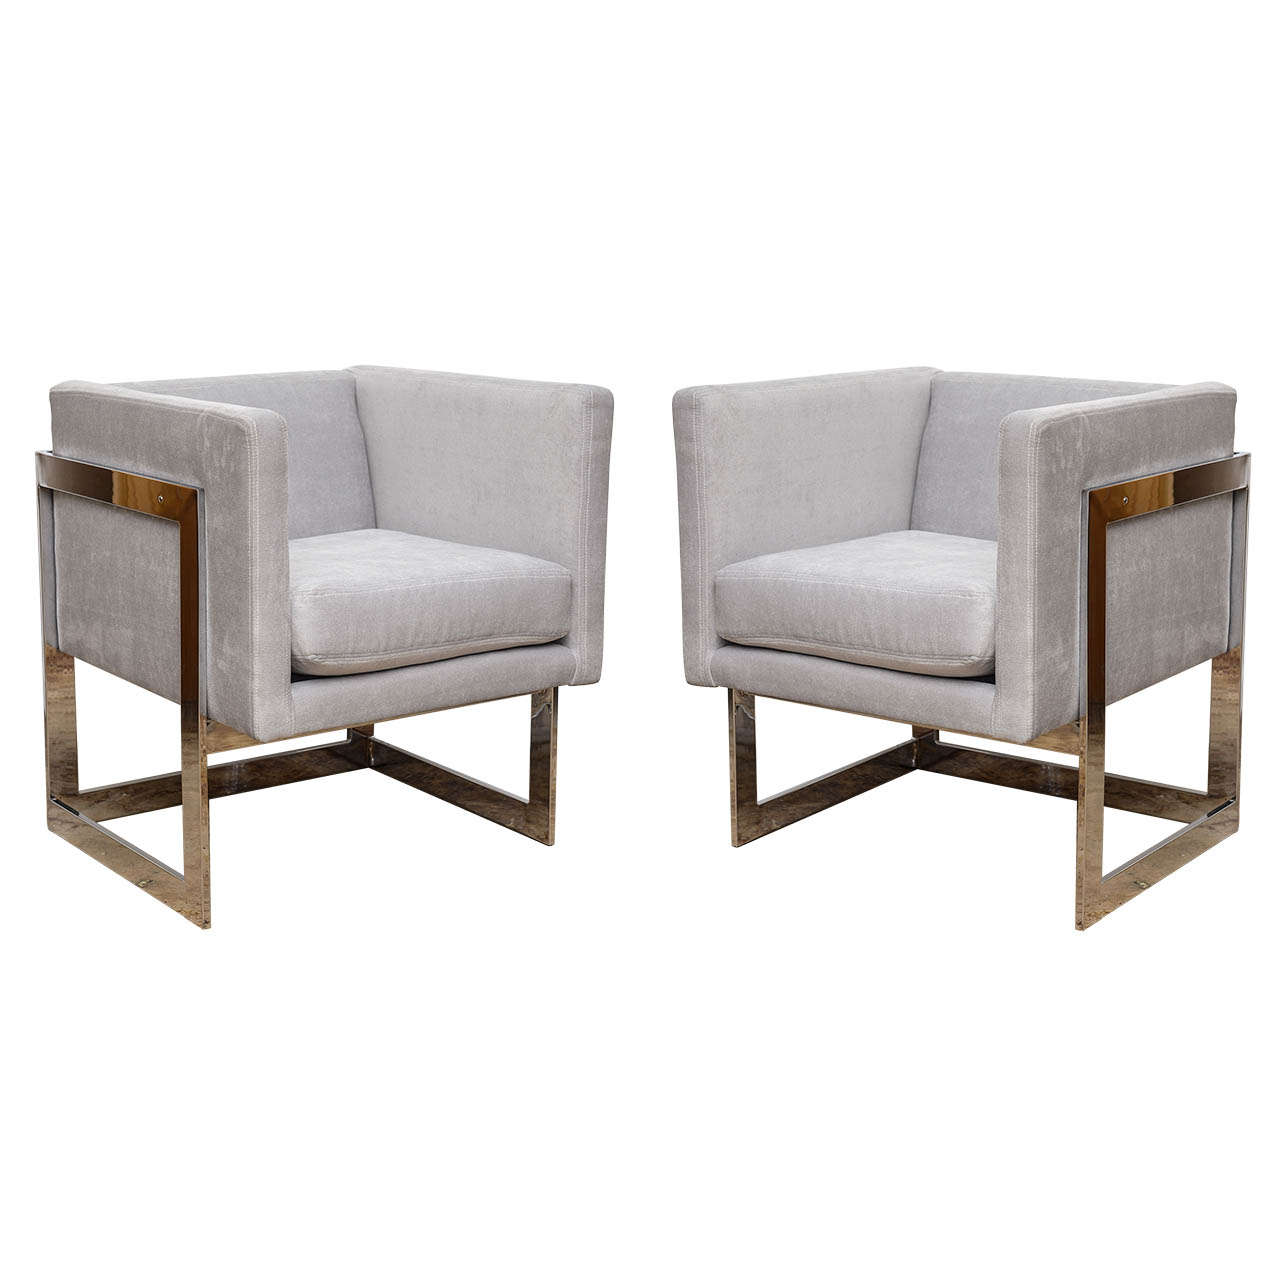 Cube Chairs by Milo Baughman for Thayer Coggin at 1stdibs